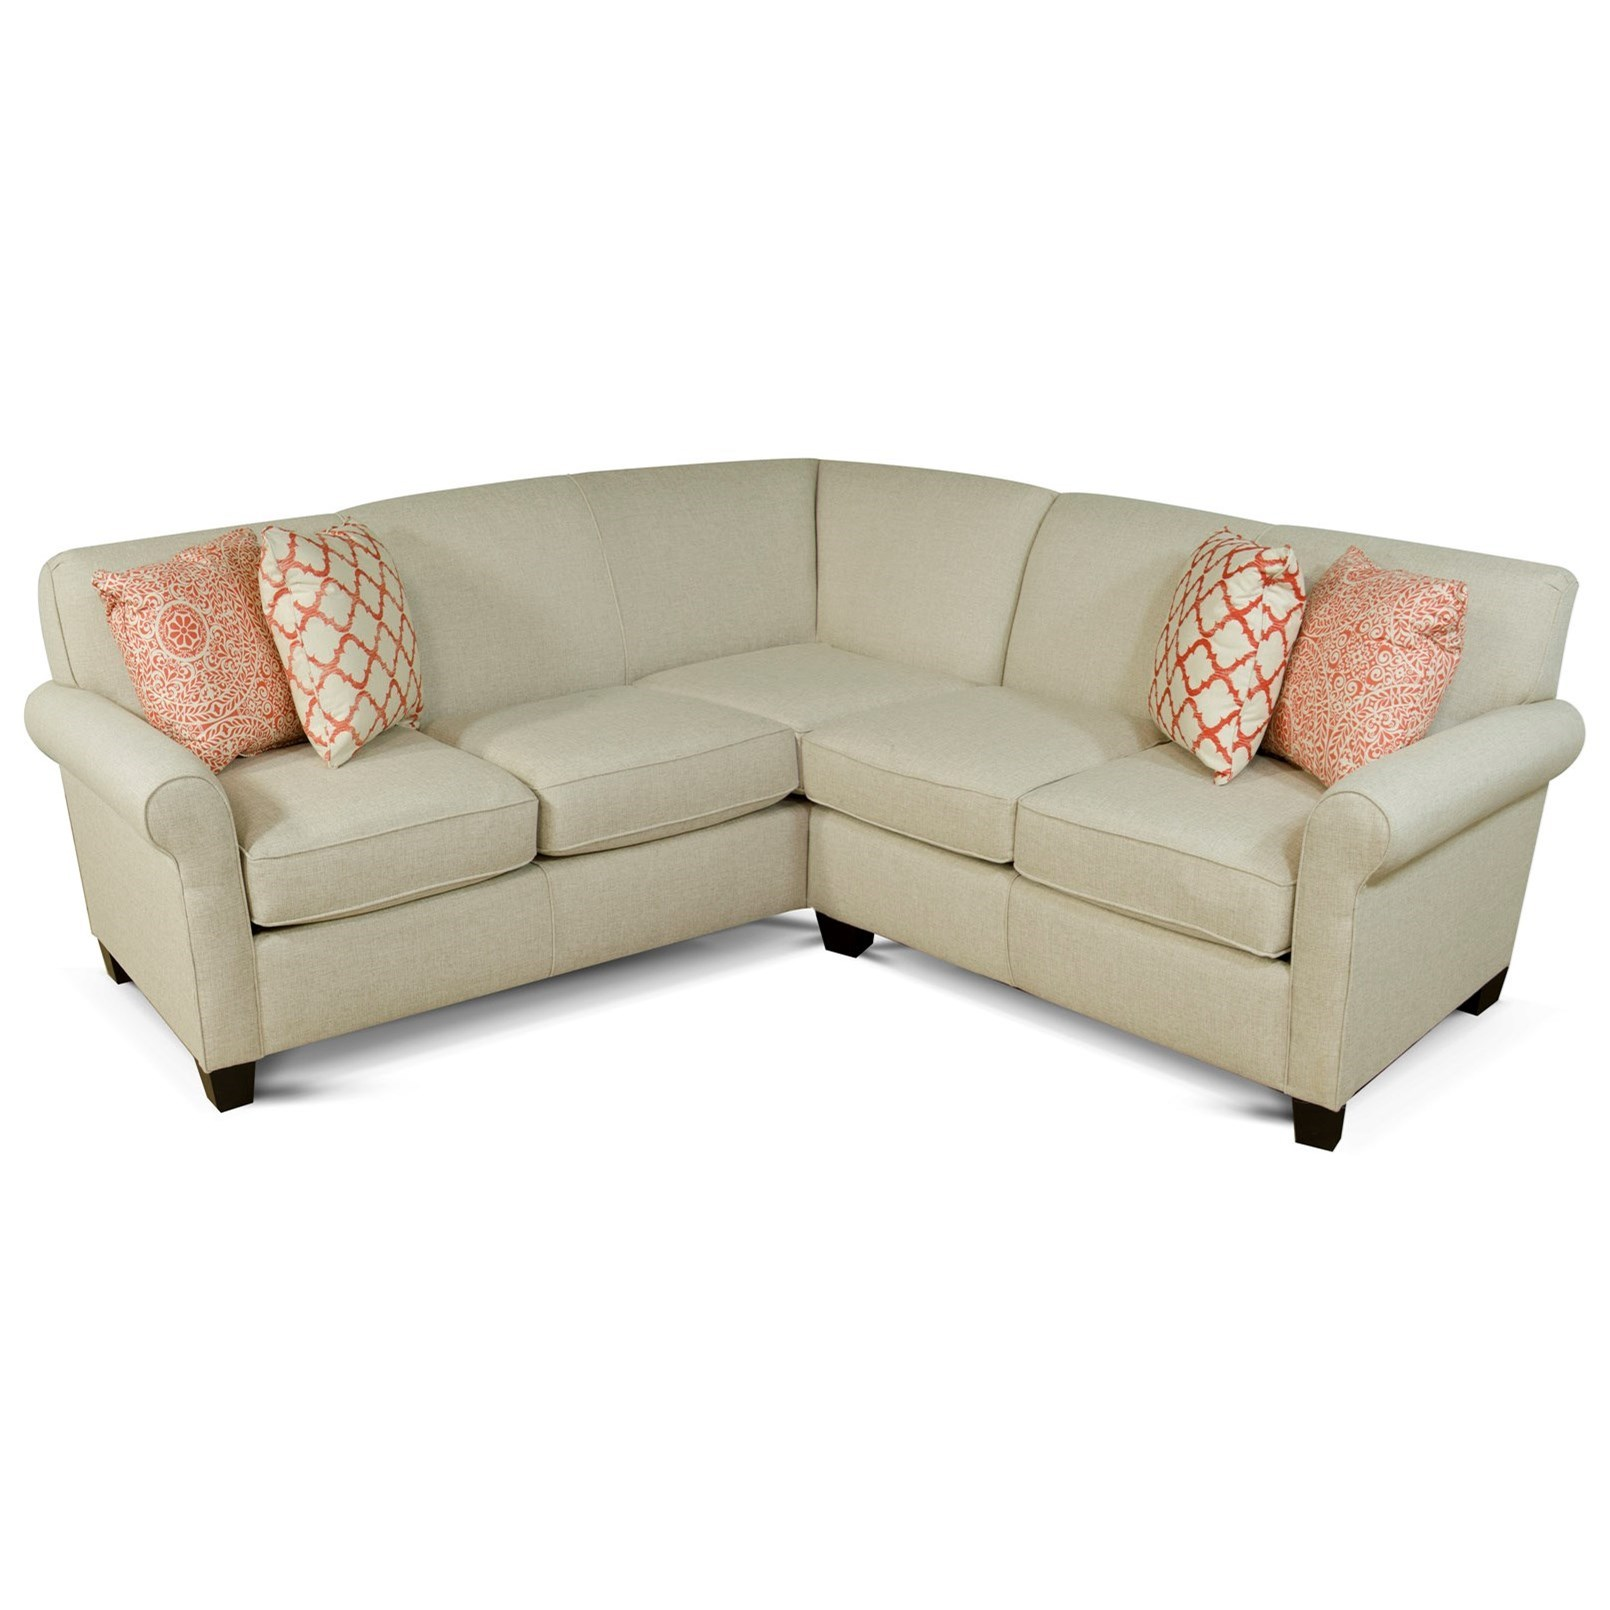 England angie small corner sectional sofa reeds for What is a small couch called